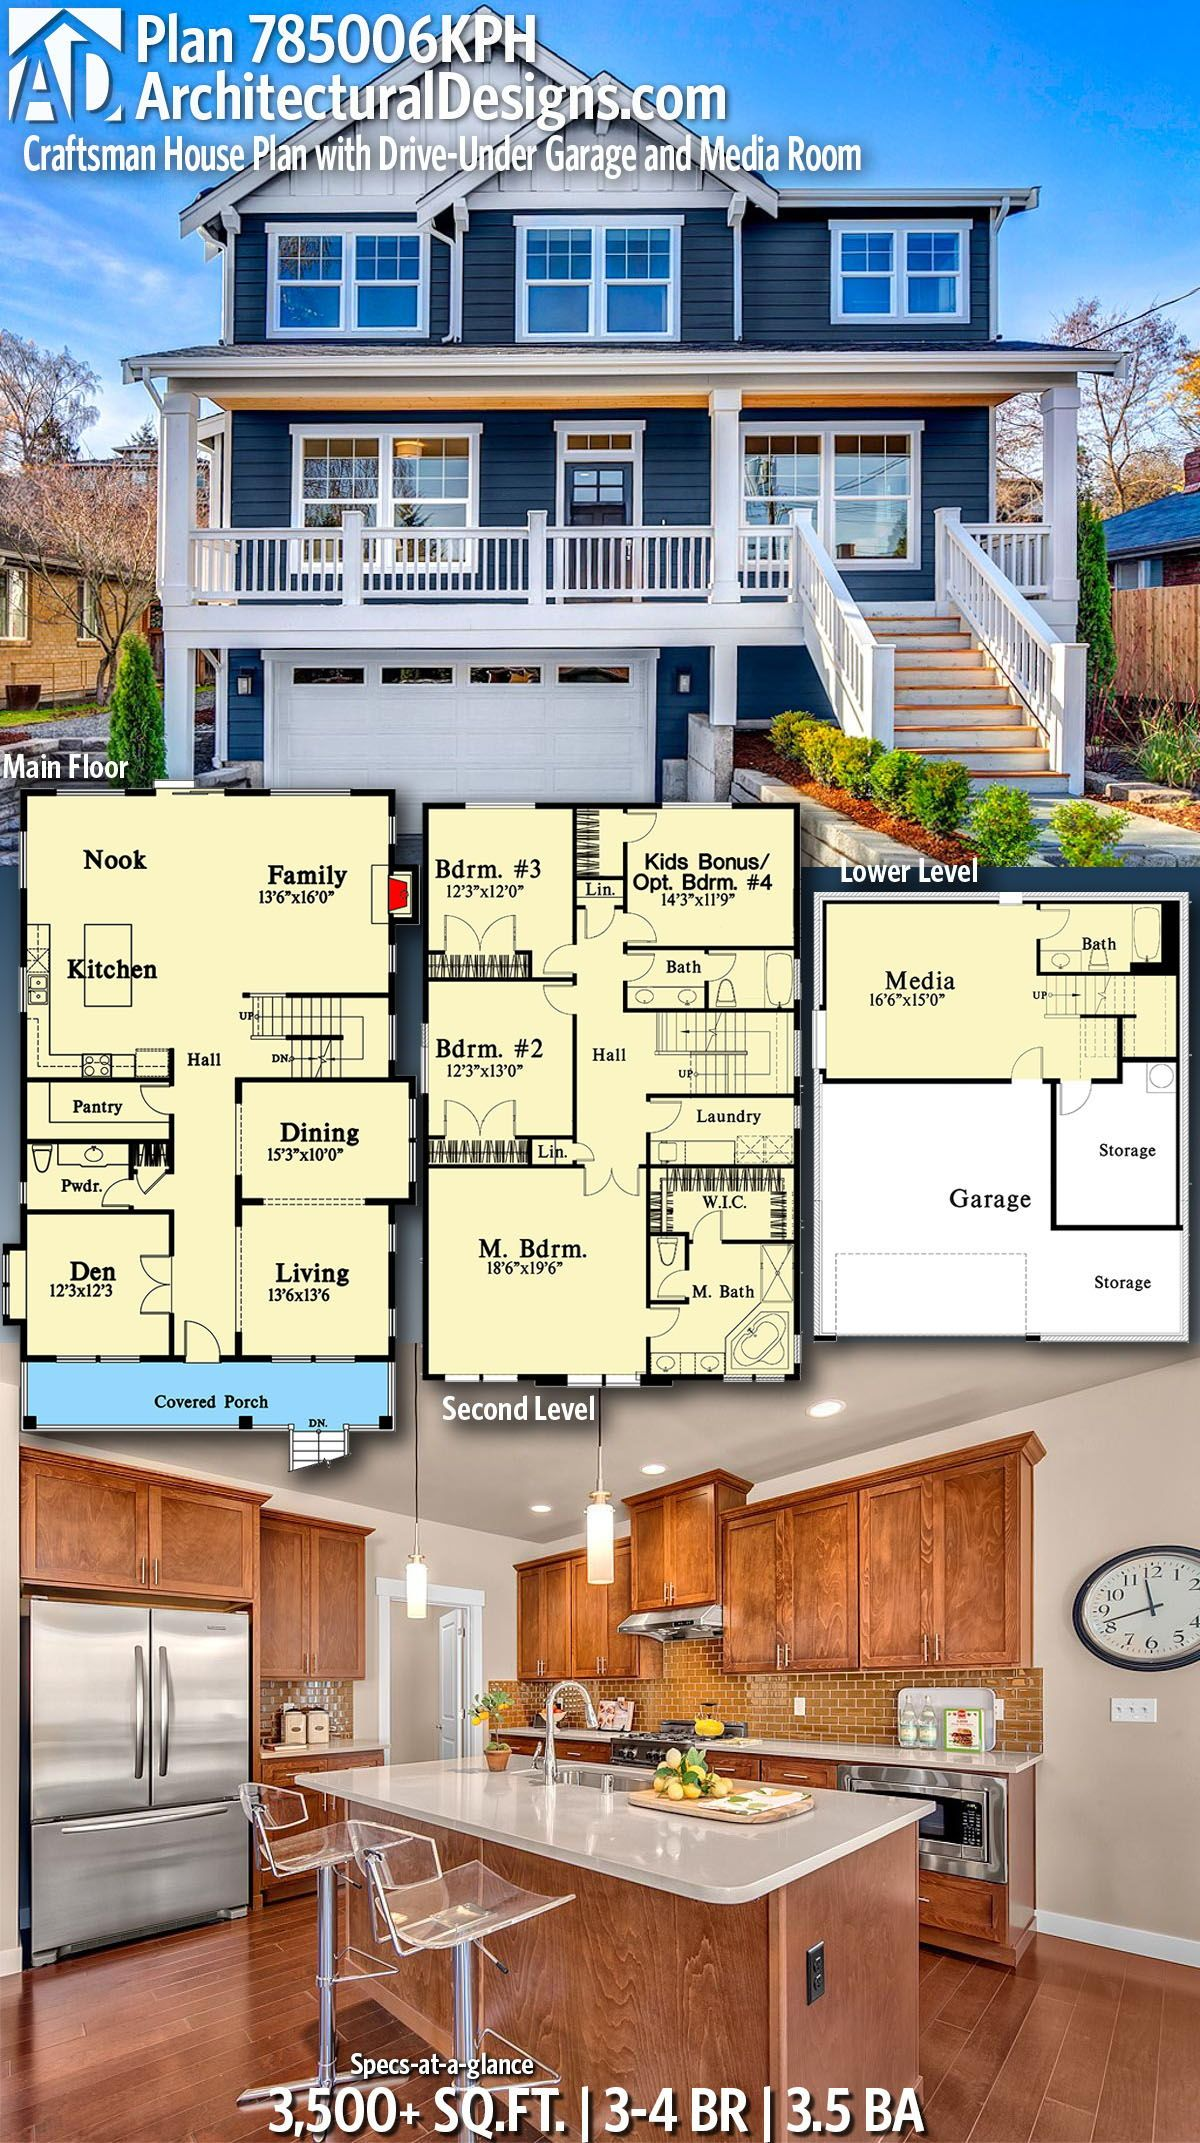 Plan 785006kph Craftsman House Plan With Drive Under Garage And Media Room In 2020 Craftsman House Plan Craftsman House Sims House Plans